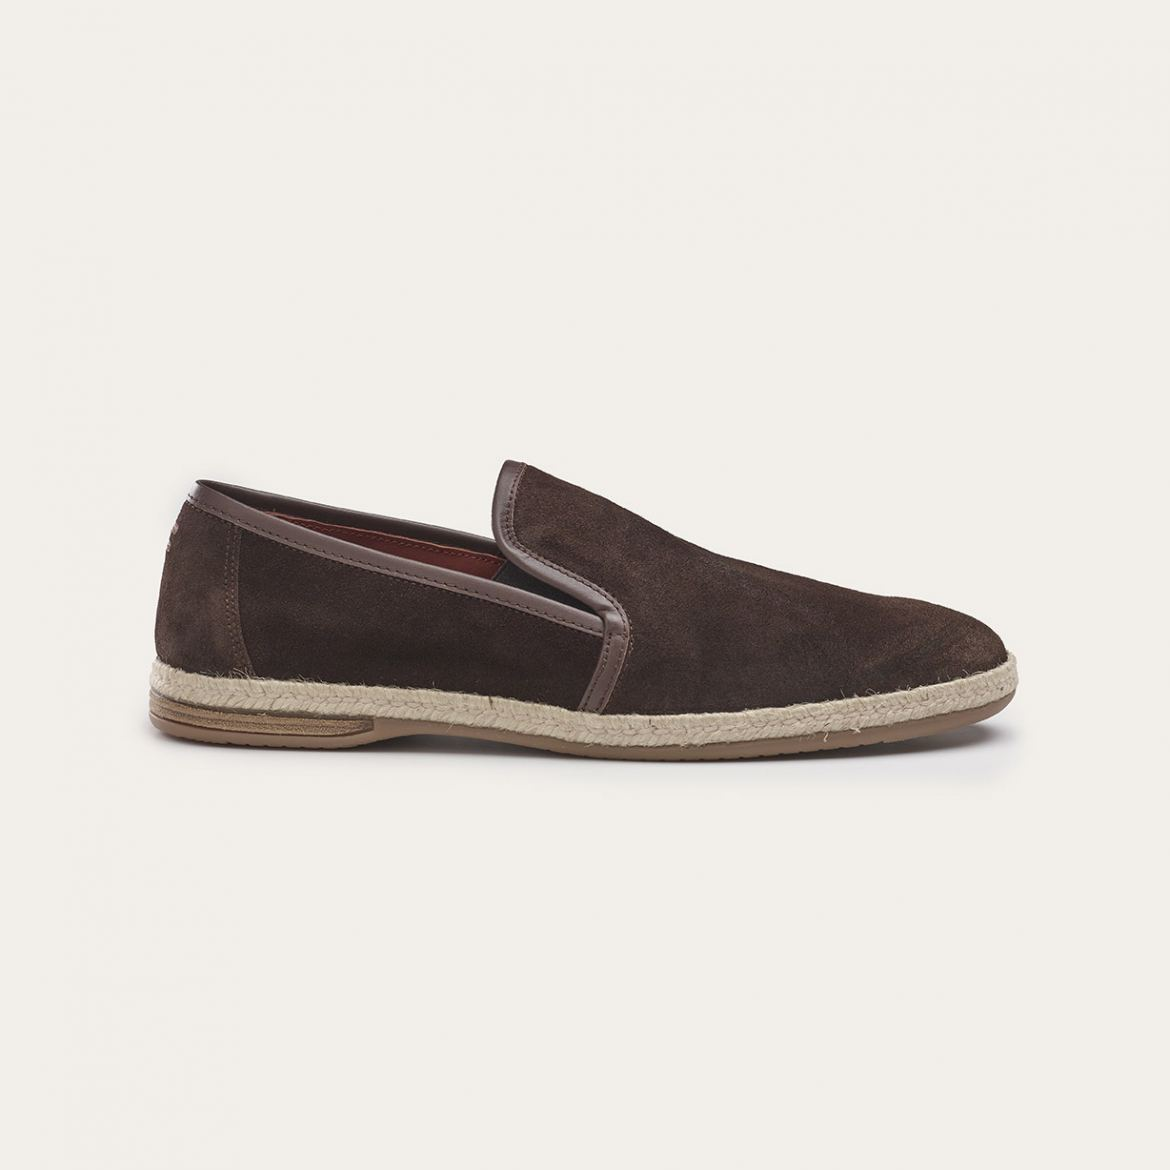 Greve Loafer Riviera T. Moro Florence  6379.02